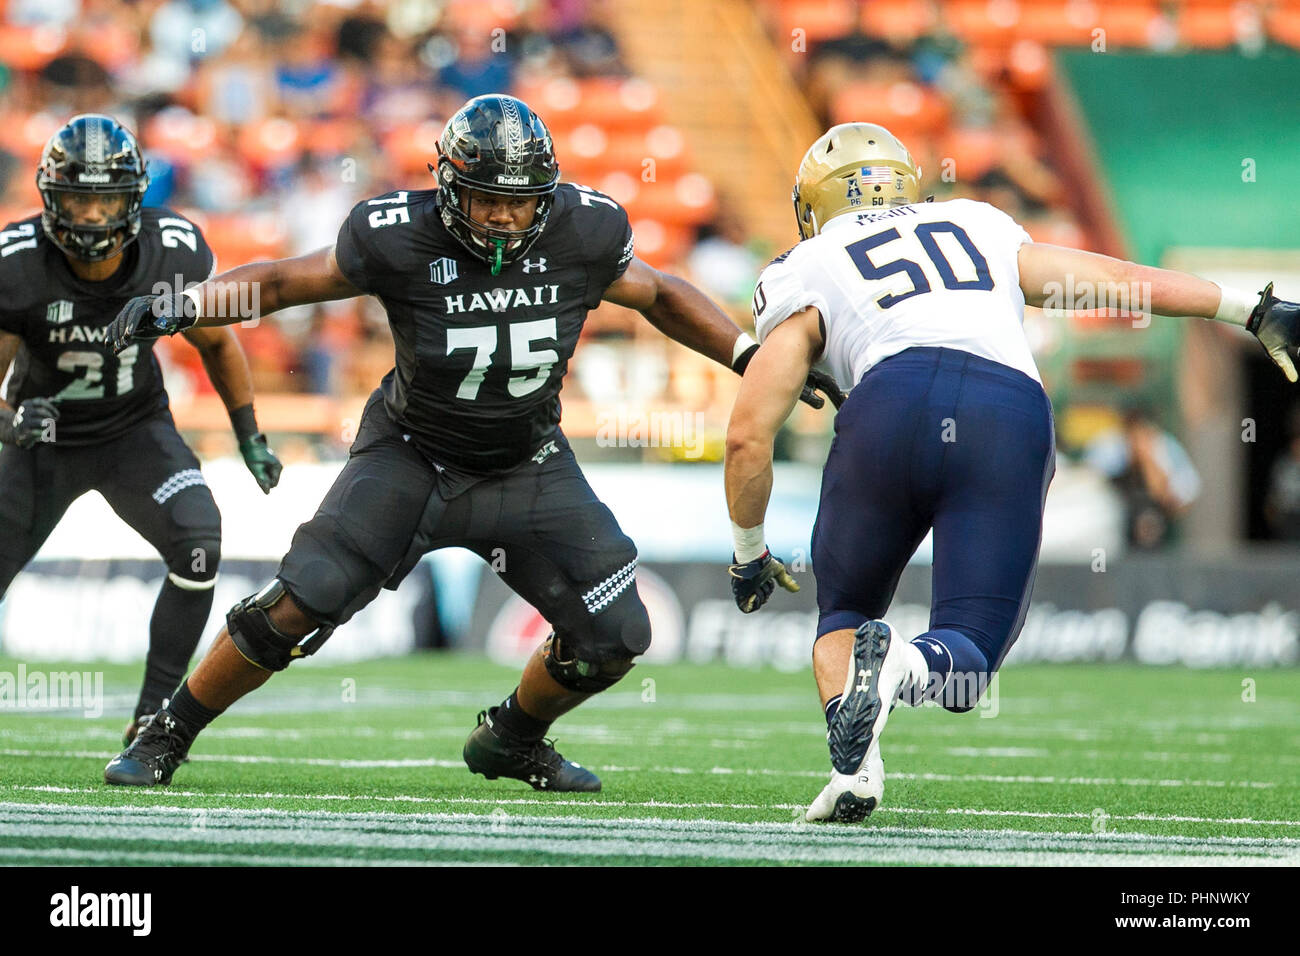 Honolulu, Hawaii, USA. 01st Sep, 2018. September 1, 2018 - Hawaii Rainbow Warriors offensive lineman Ilm Manning #75 blocks Navy Midshipmen linebacker Diego Fagot #50 during NCAA football game between the Navy Shipmen and the University of Hawaii Warriors at Hawaiian Airlines Field at Aloha Stadium in Honolulu, Hawaii. Glenn Yoza/CSM Credit: Cal Sport Media/Alamy Live News Stock Photo